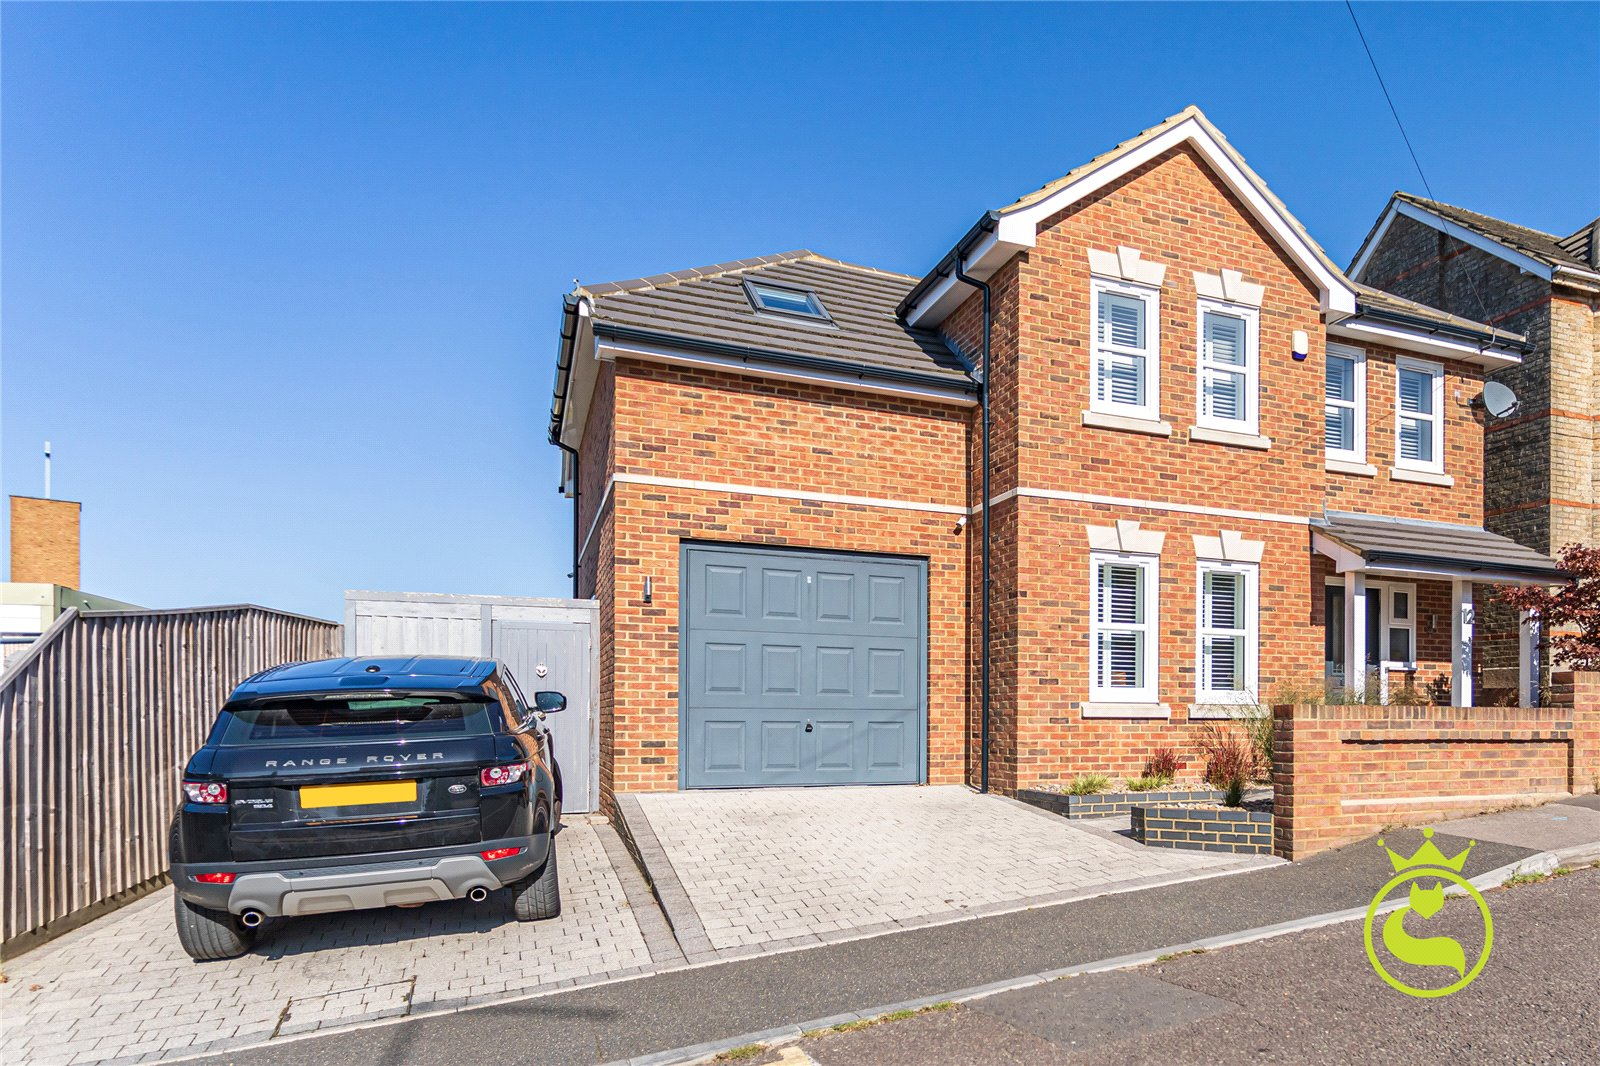 4 bed house for sale in Doyne Road, Penn Hill - Property Image 1